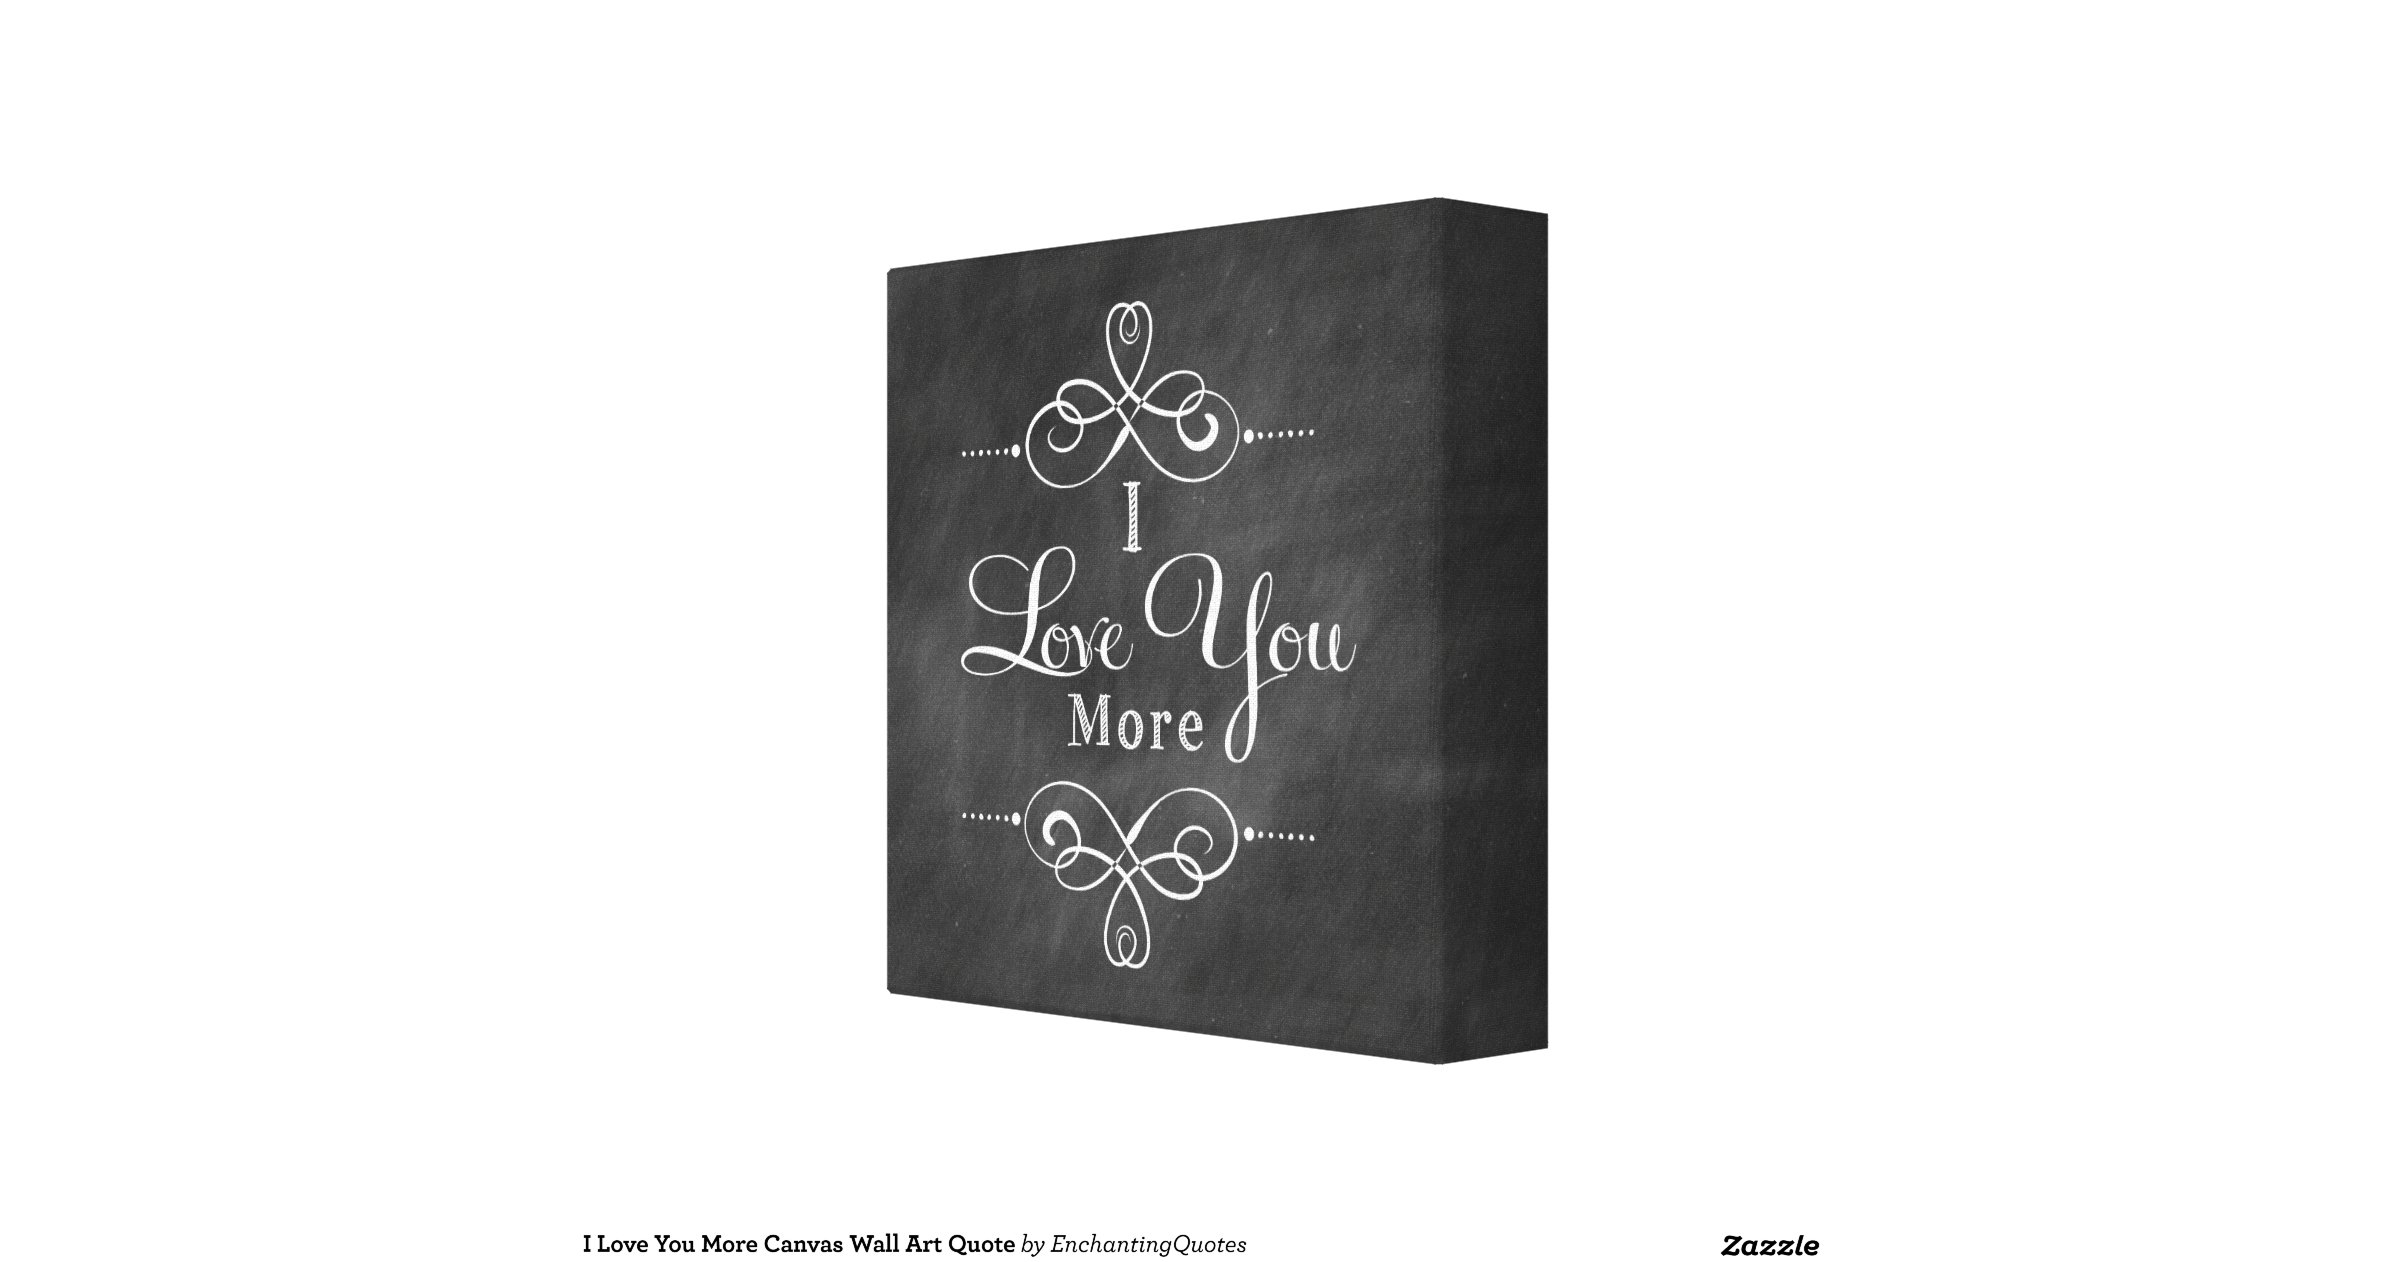 i love you more canvas wall art quote canvas prints zazzle. Black Bedroom Furniture Sets. Home Design Ideas